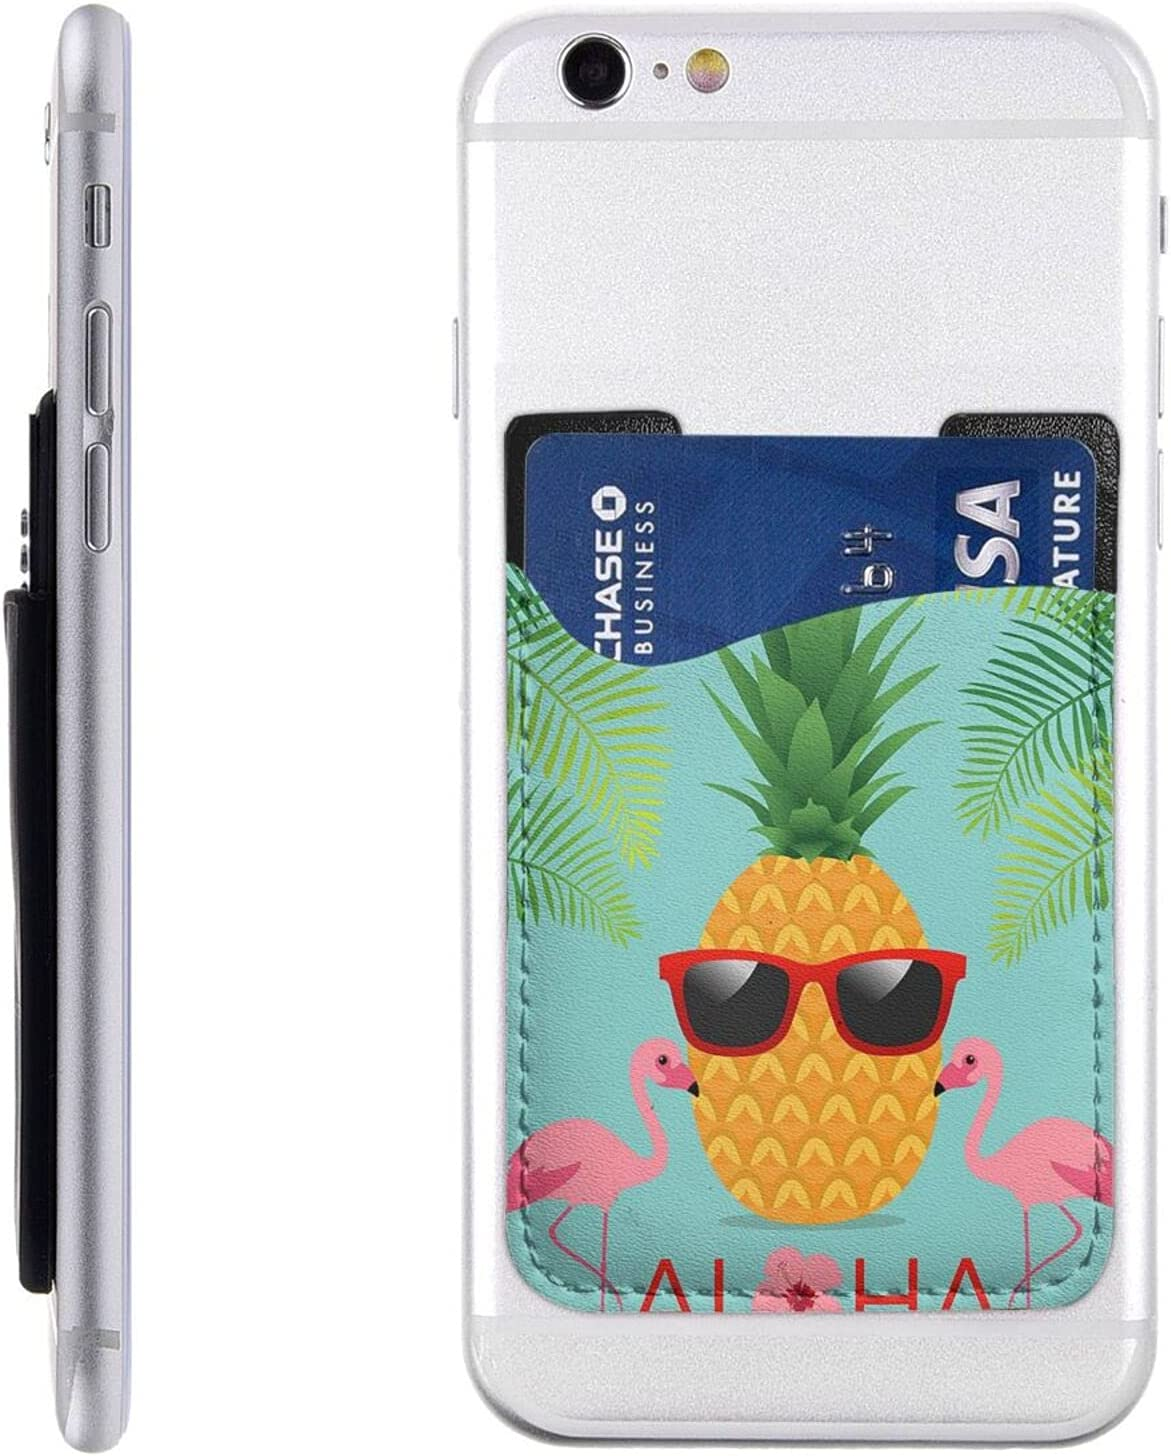 Pineapple Flamingo Phone Card Holder New York Mall On Wa Cell Max 51% OFF Stick